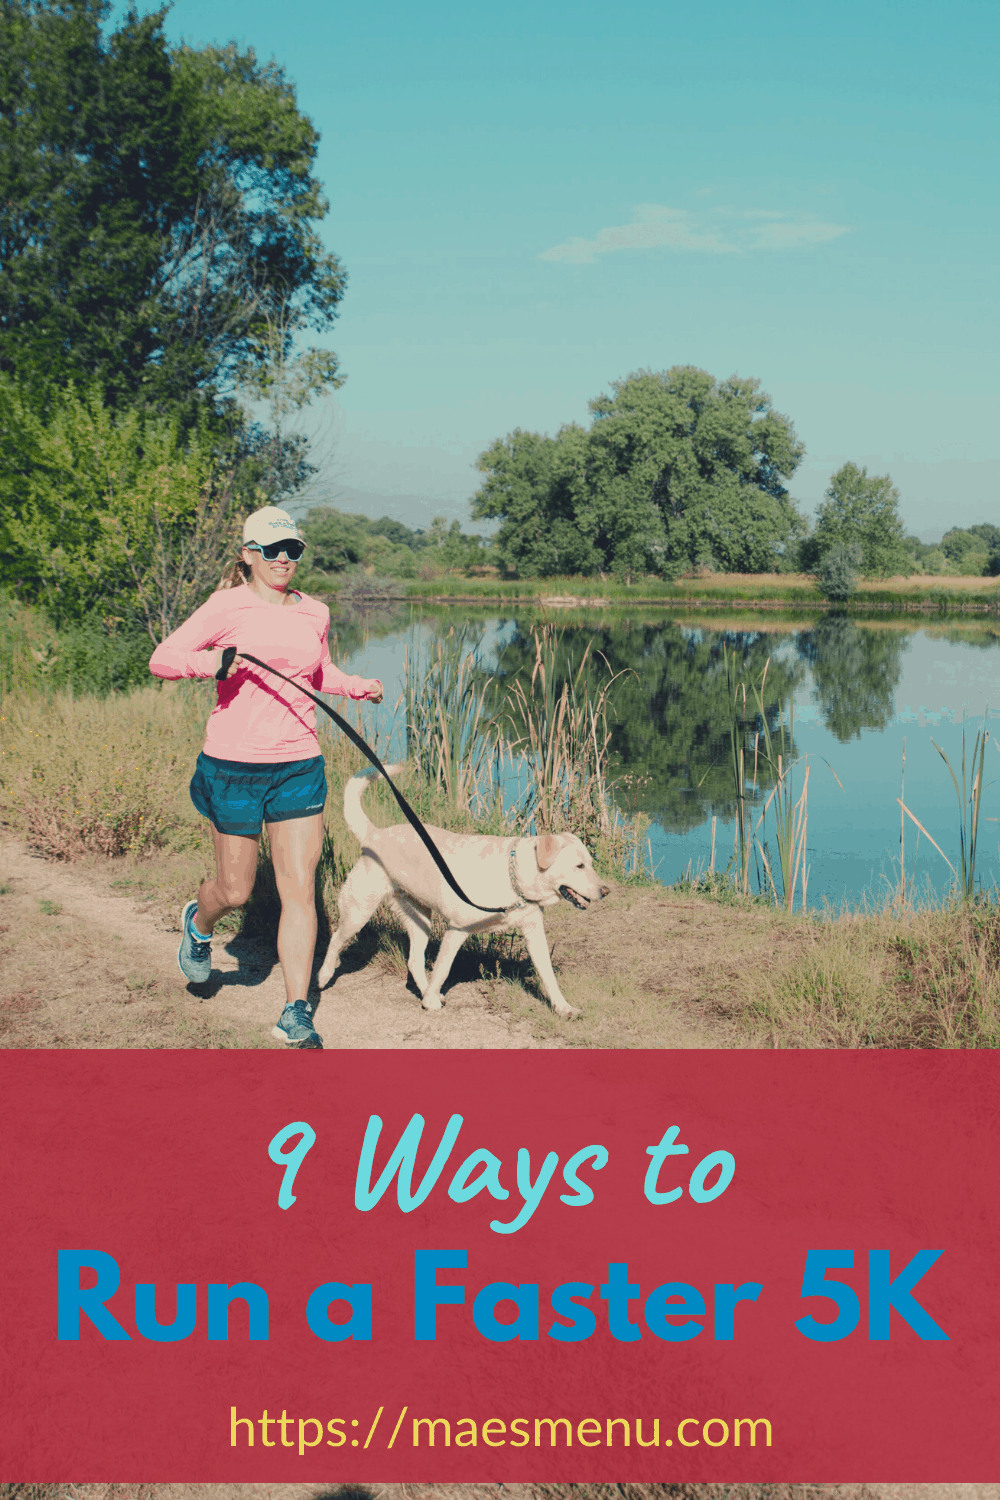 """Chelsea plummer of Mae's Menu, running with her yellow lab on her pinterest pin for """"9 Ways To Run a Faster 5K"""""""